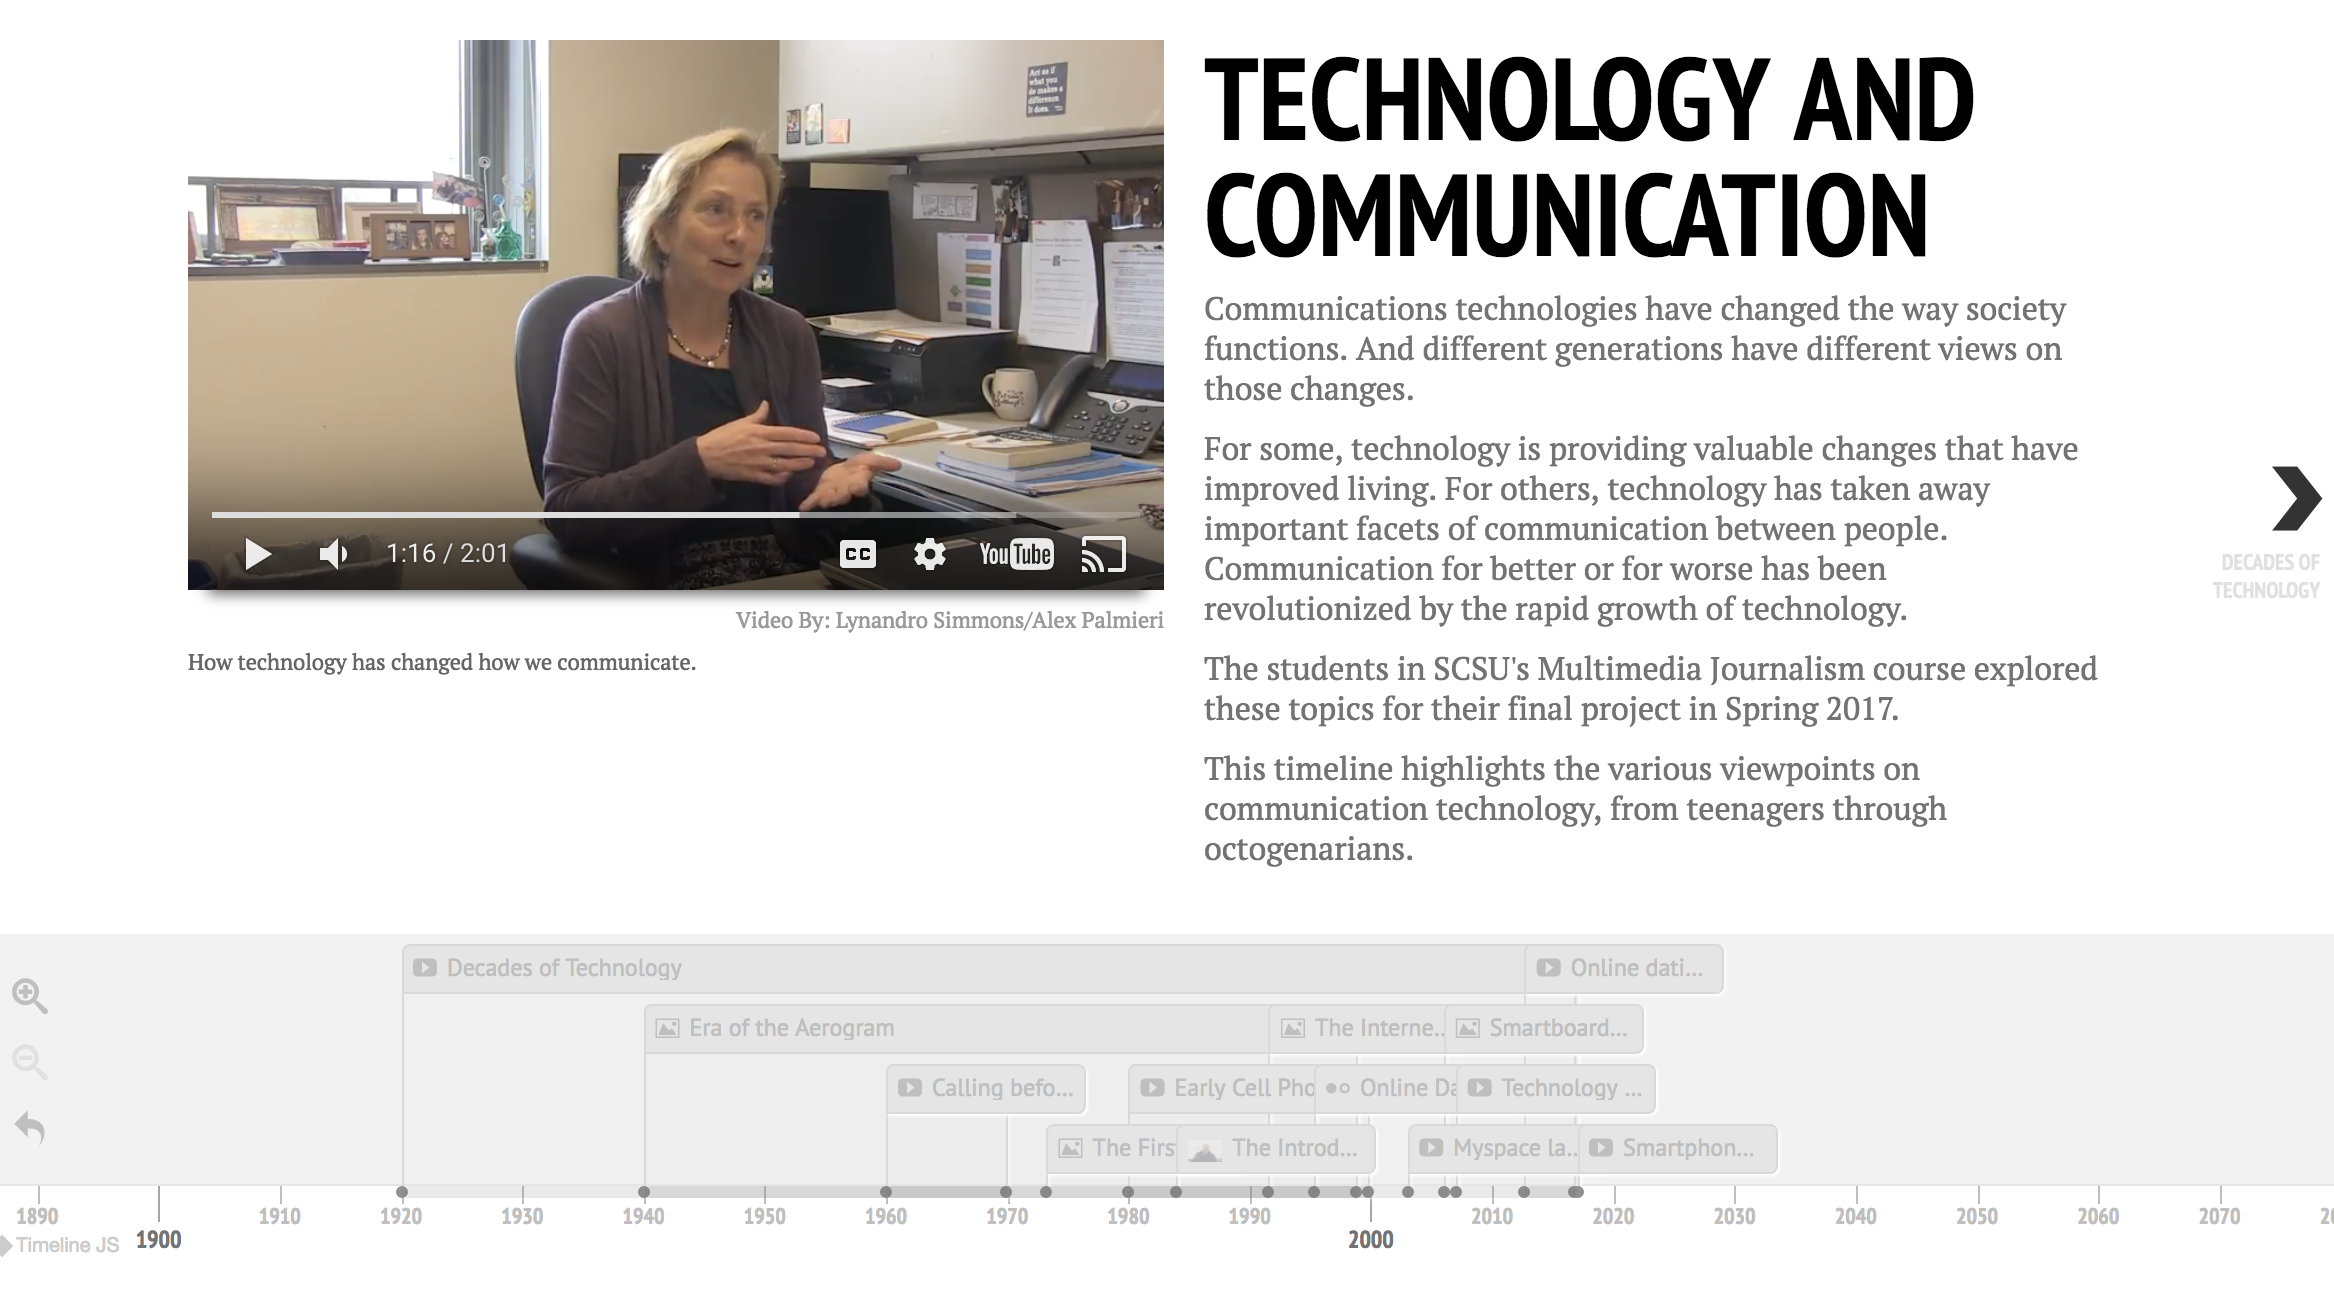 A lifetime of change in communication technology